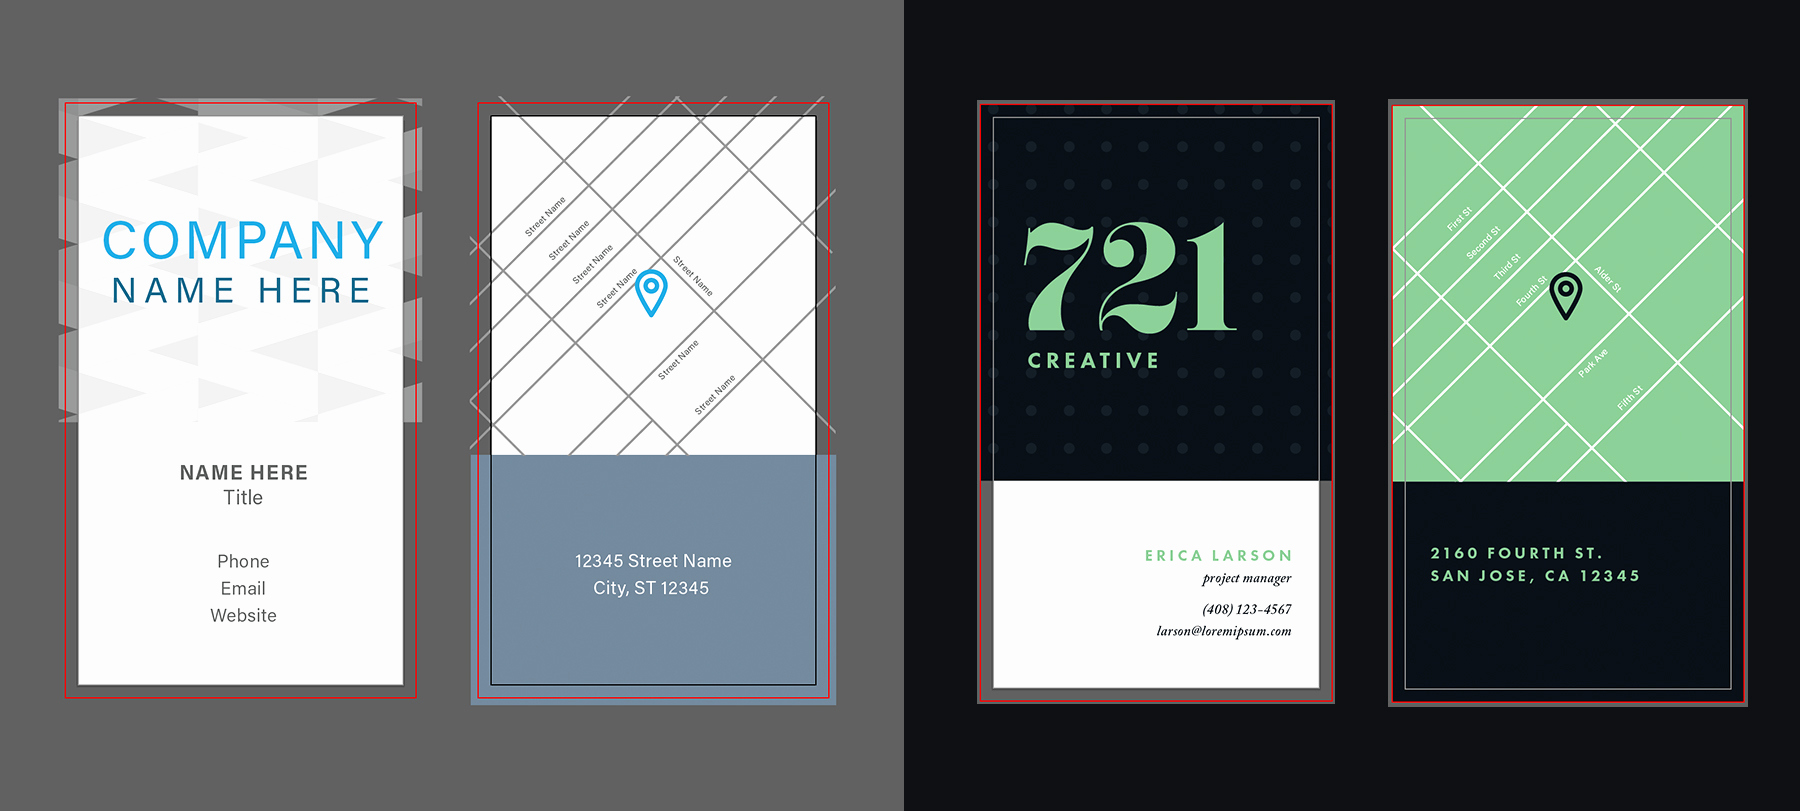 Business Card Illustrator Template Awesome Customize An Illustrator Template today